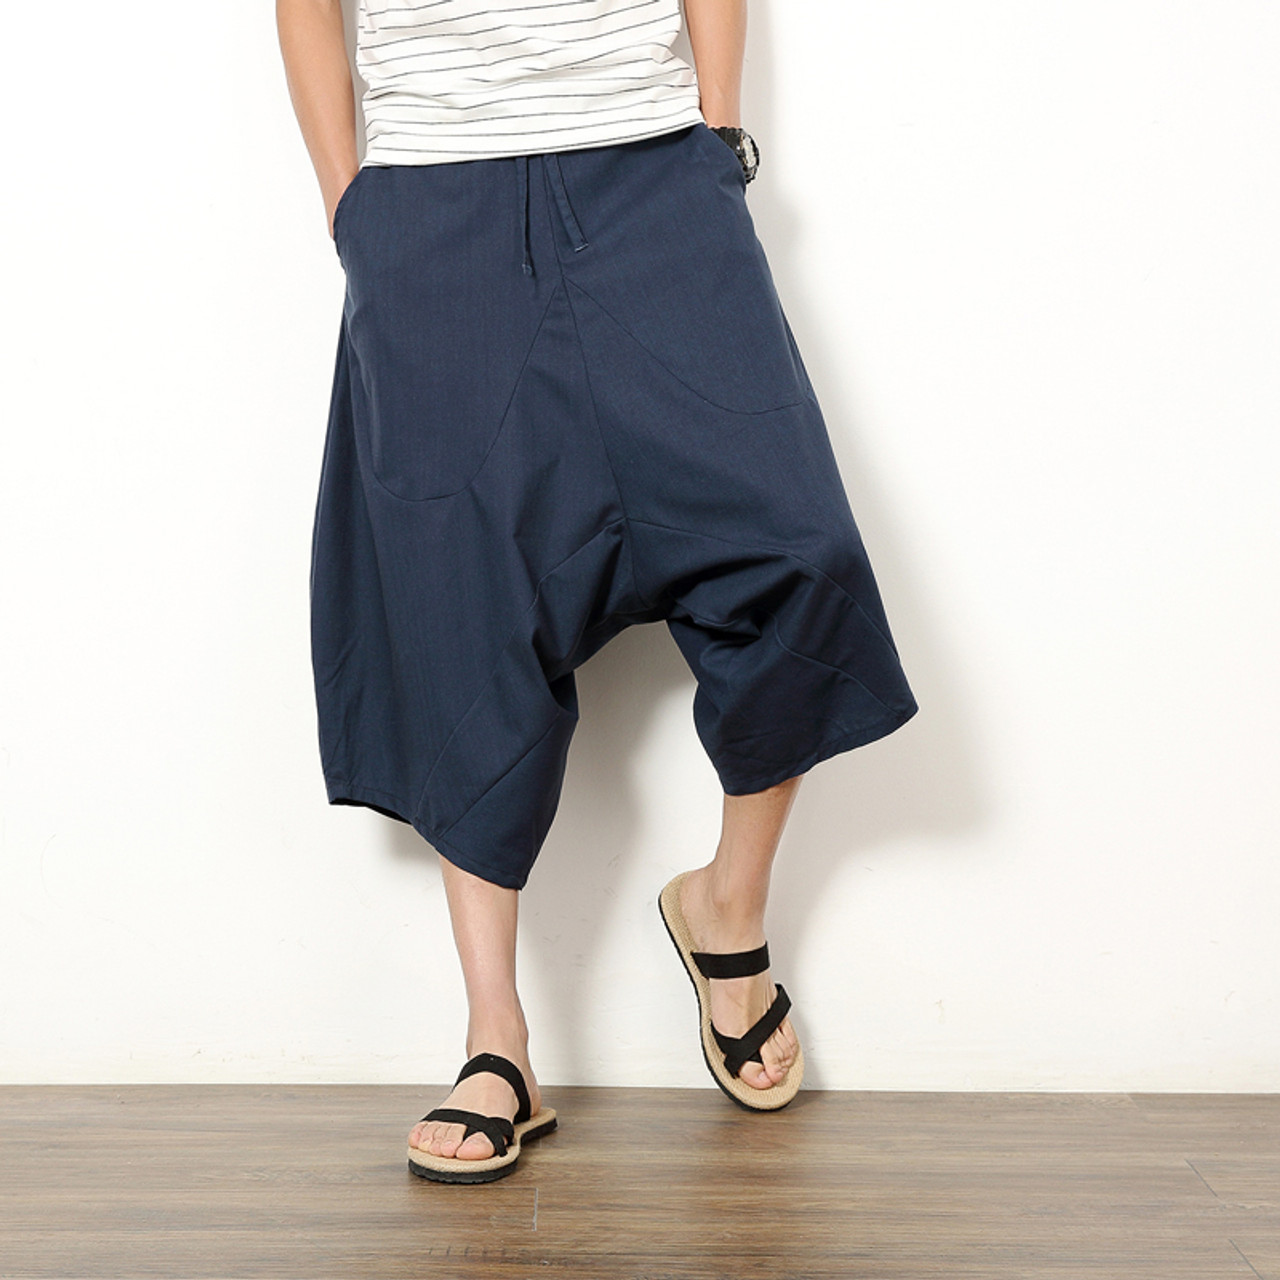 4f9104c53b ... Summer Harlan Linen Cotton Casual Pants Men Drawstring Waist Male Solid  Color Patch Pants Loose Trousers ...